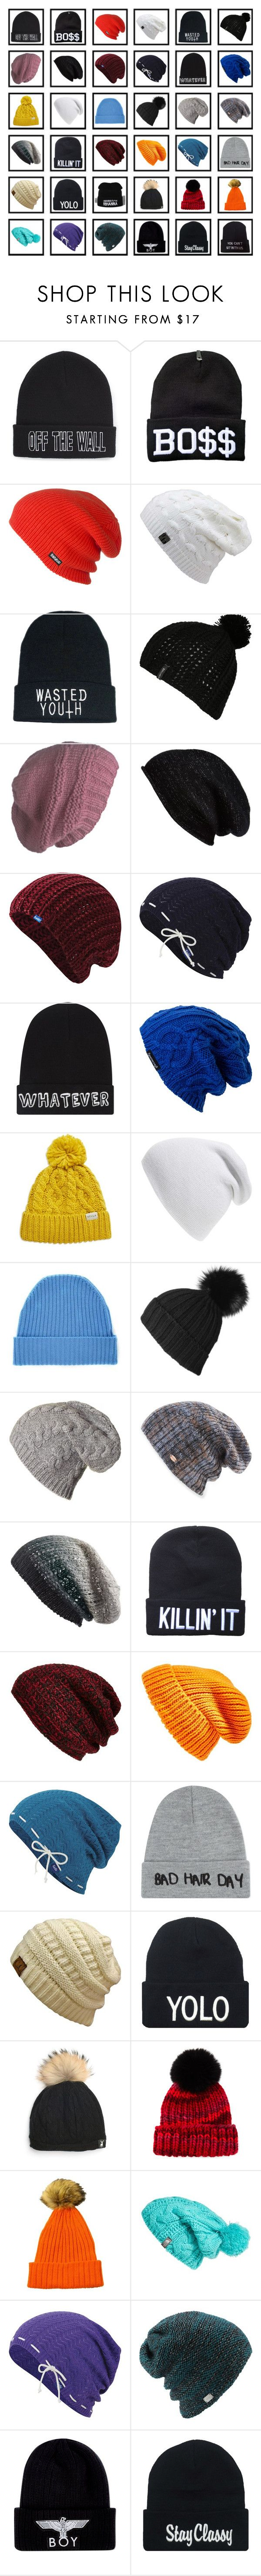 """Beanies"" by black-and-blue-girl ❤ liked on Polyvore featuring Vans, ThirtyTwo, Billabong, Laundromat, Halogen, Keds, Local Heroes, Spacecraft, Rella and Phase 3"